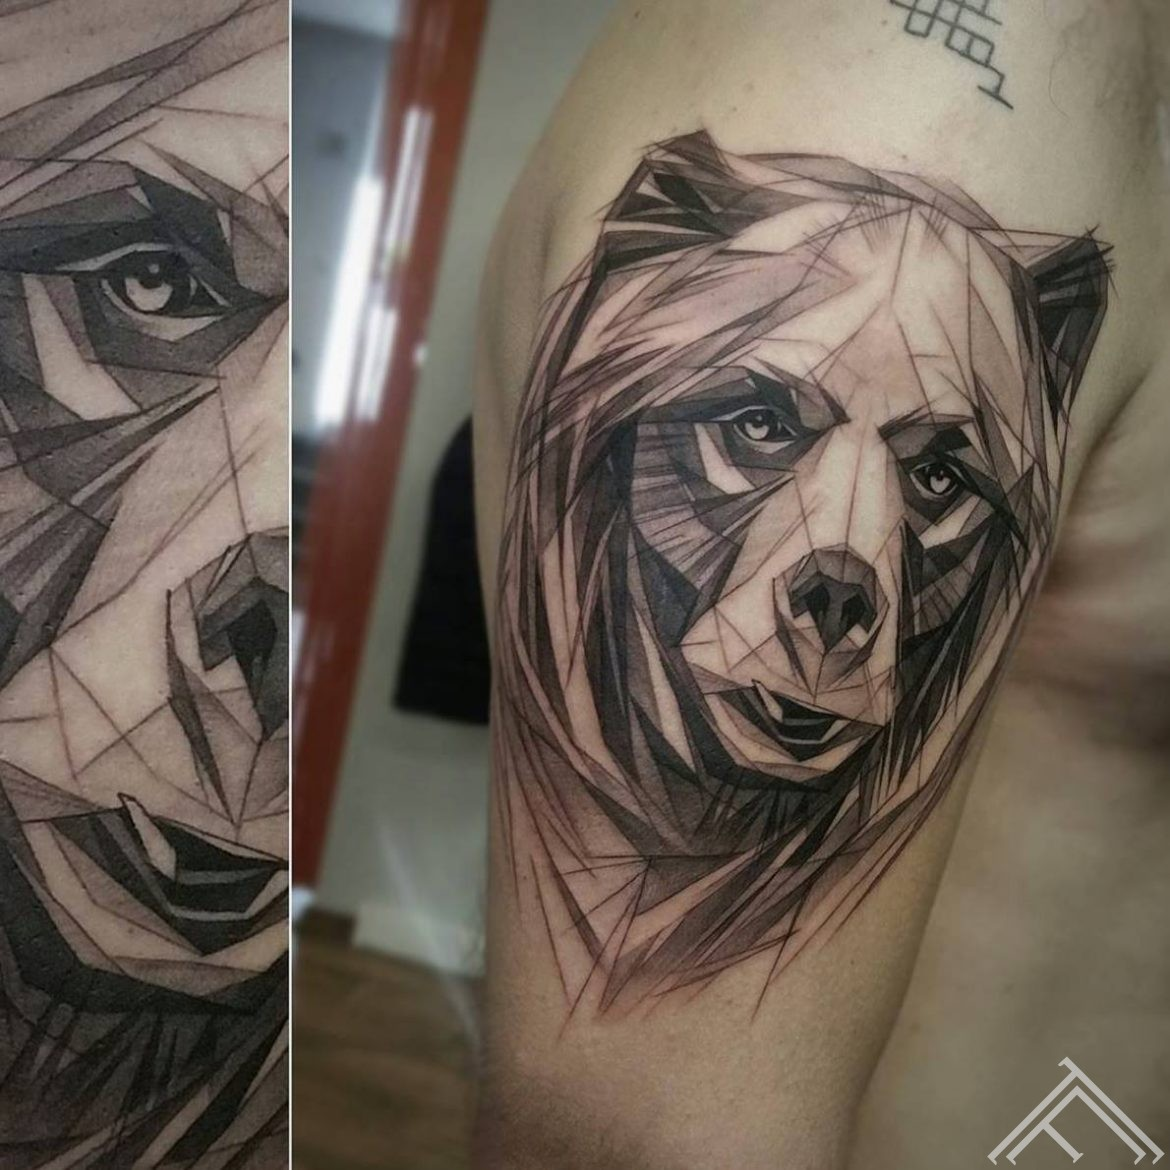 bear-lacis-geometric-sketch-skice-tetovejums-tattoo-riga-tattoofrequency-janissvars